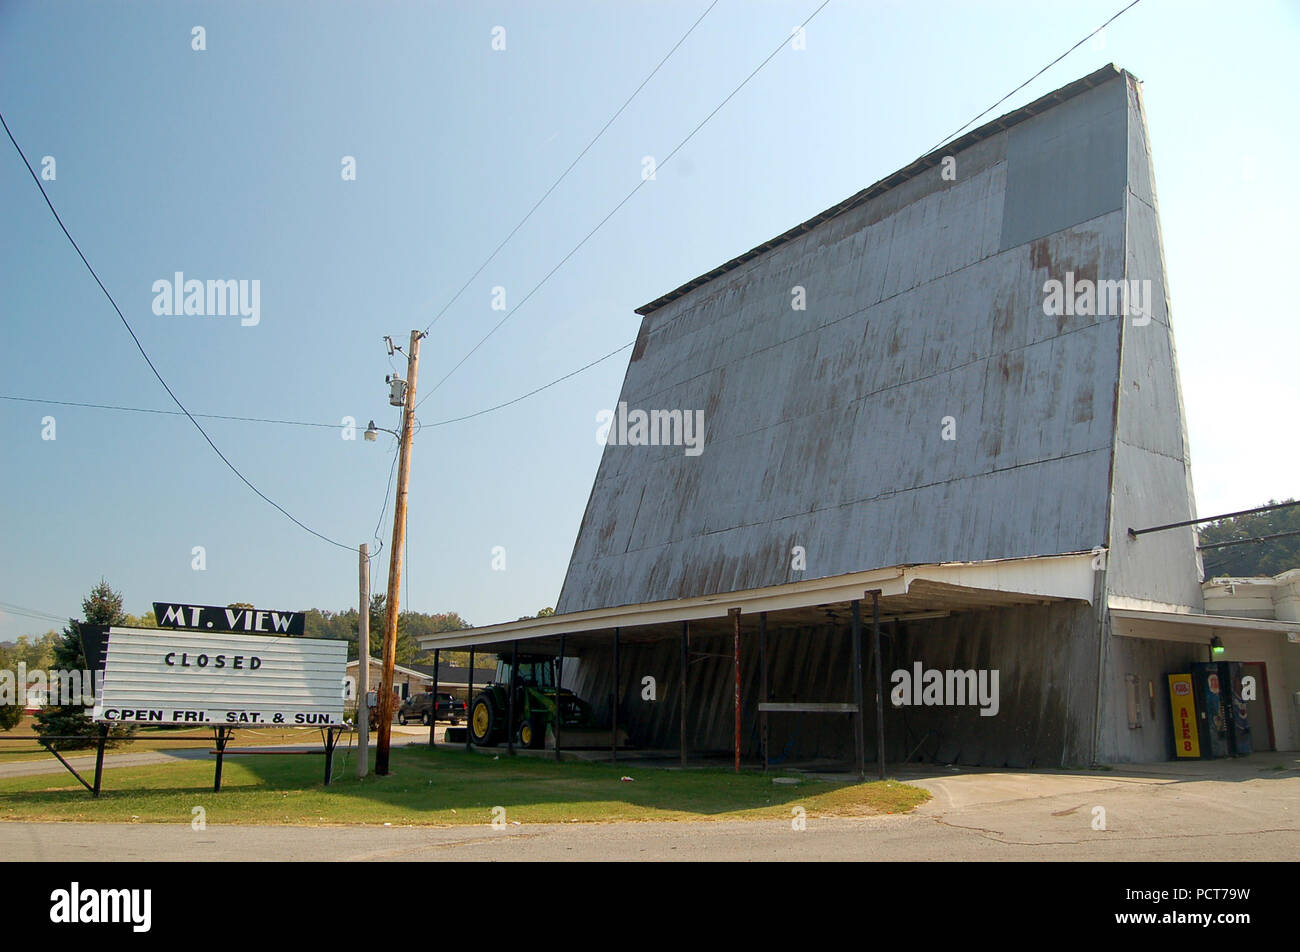 A vanishing remnant of a time long past, the Stanton Drive In Theater is closed for winter, but opens each summer to show movies. - Stock Image